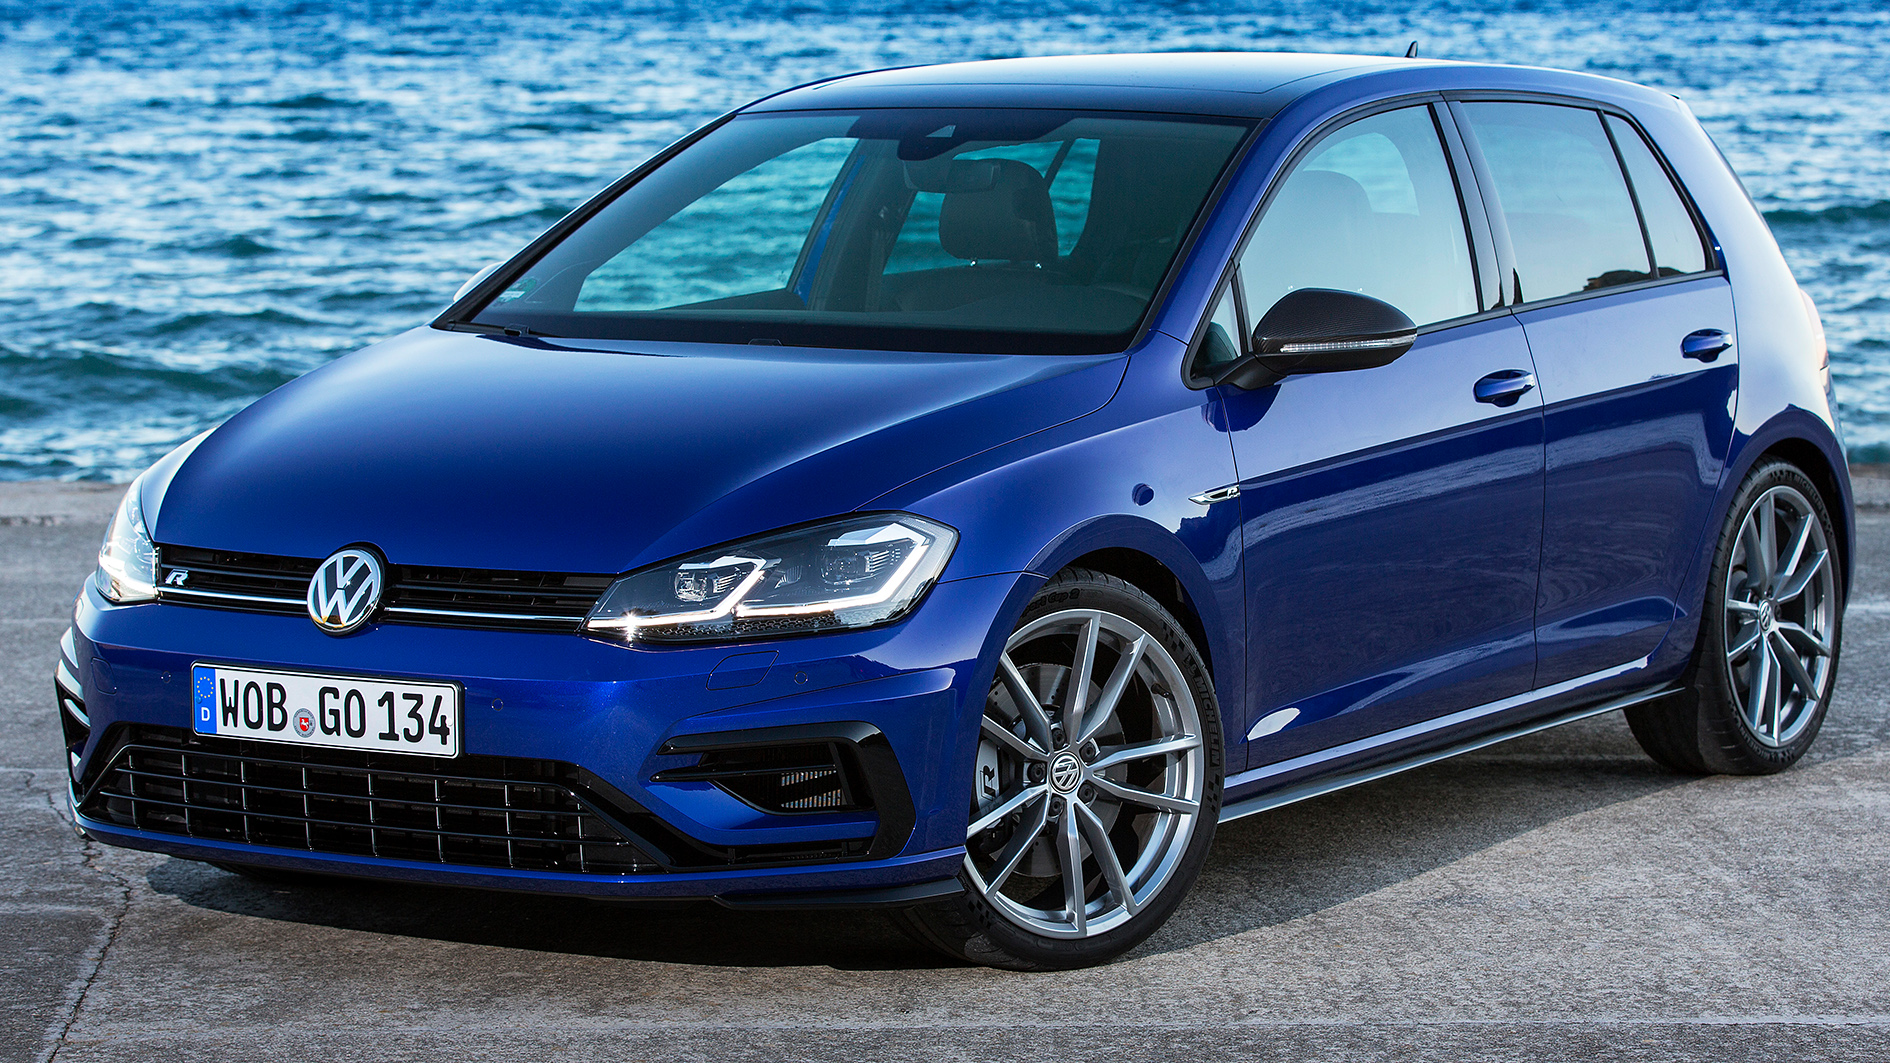 Vw E Golf 2018 >> VW e-Golf & VW Golf R Test Drive on Mallorca | Review | Driving | quickcareview.com - Free Car ...